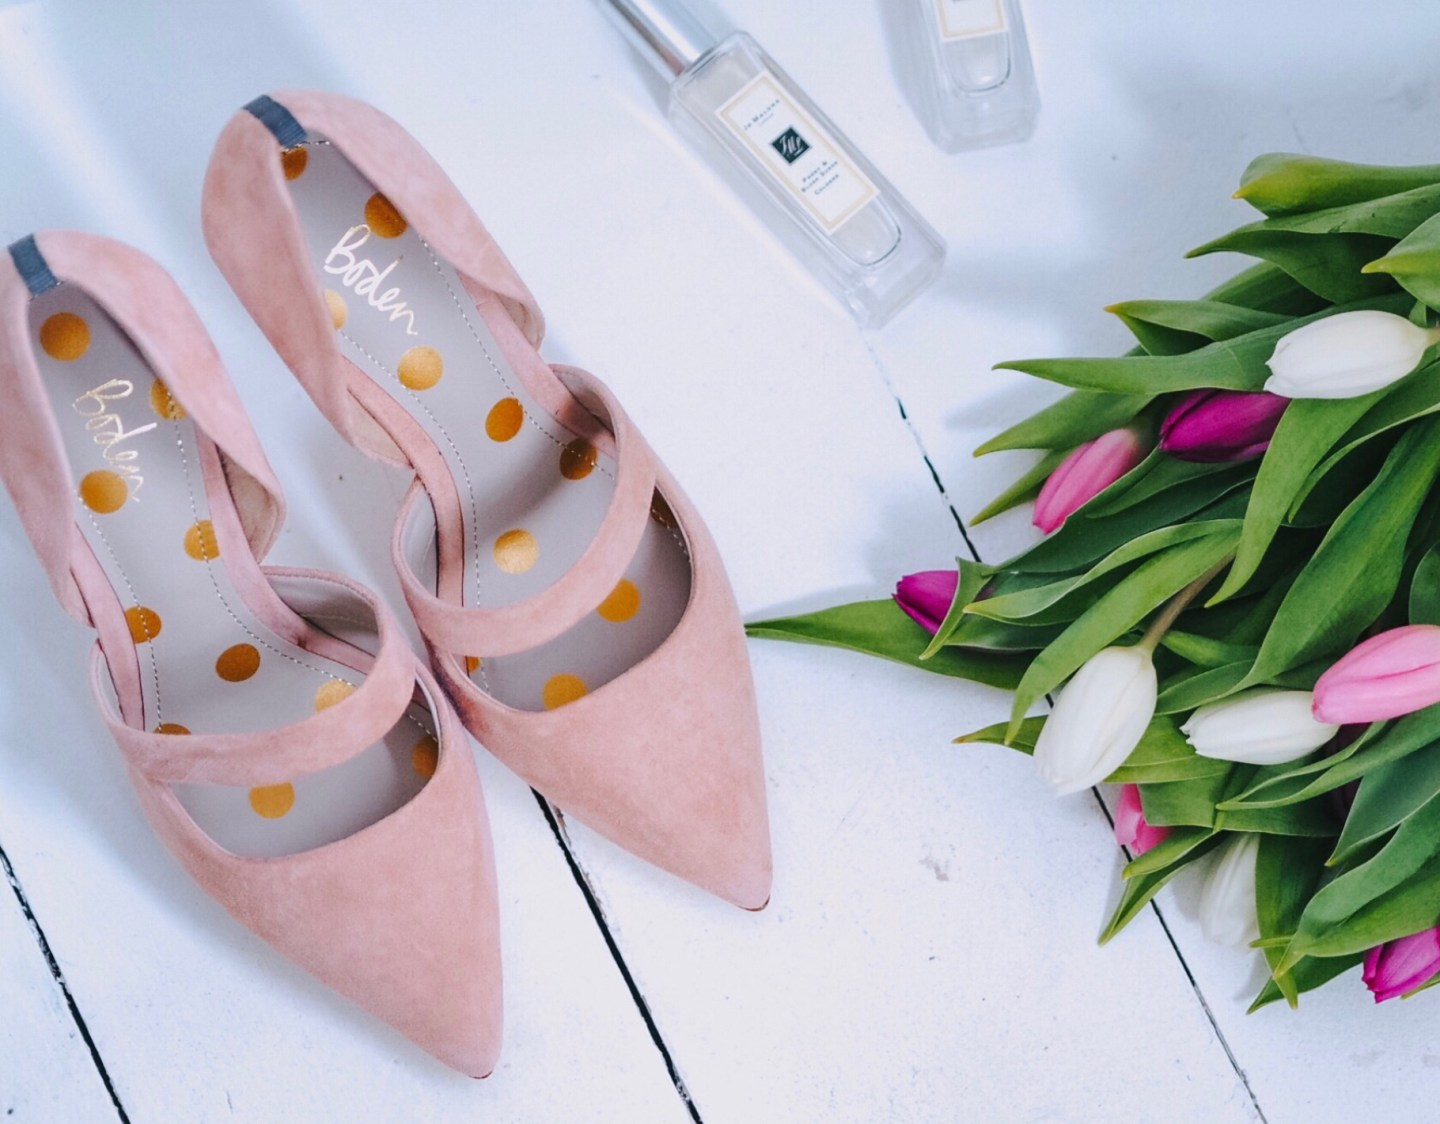 Treat your feet: Is Investing in Designer Shoes worth it?